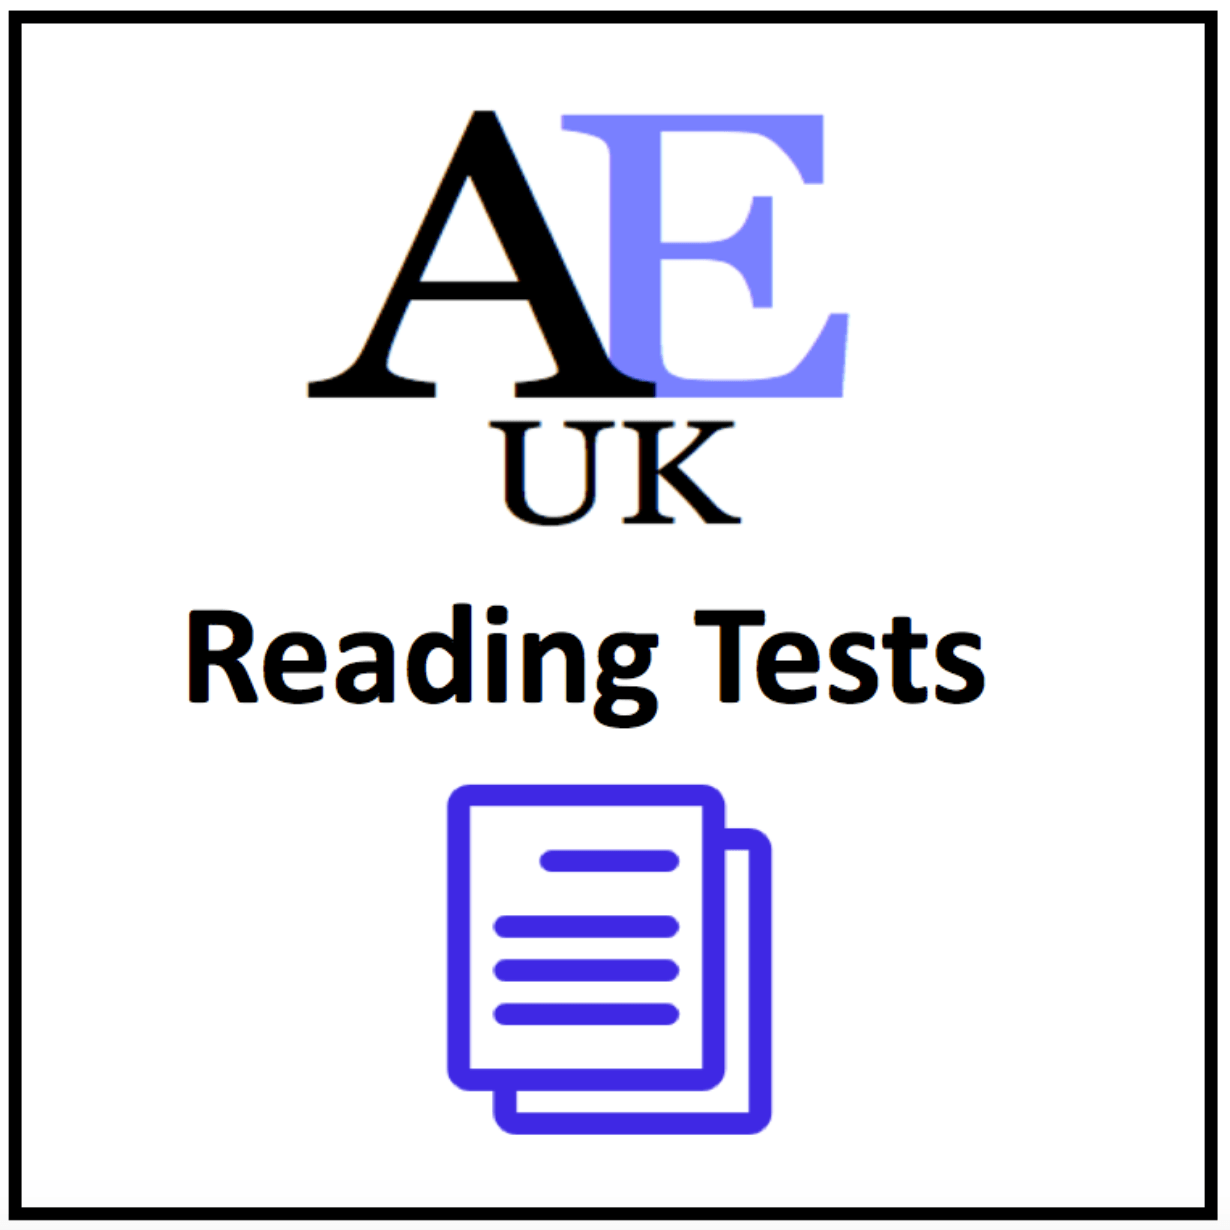 Reading Lessons and Reading Tests - Academic English Reading